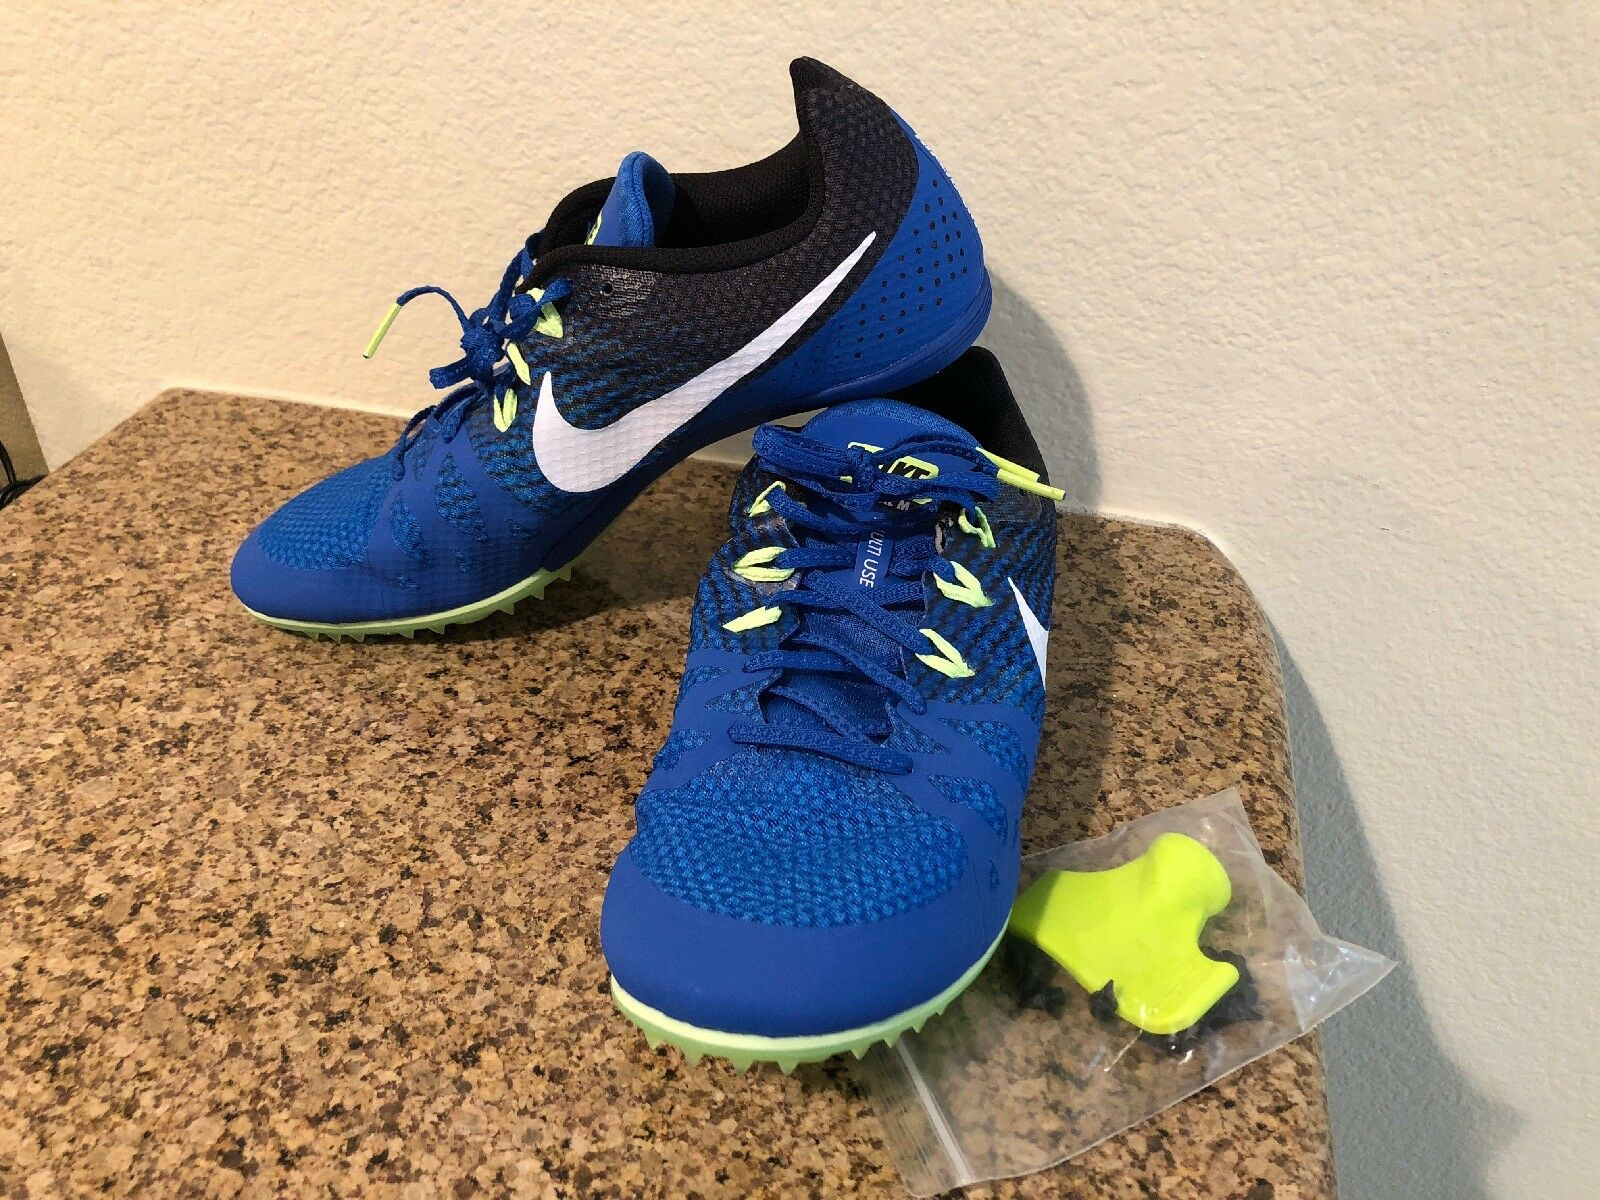 e3f2472eb4c82 Nike Zoom Rival M 8 Men s Track Field Sprint Sprint Sprint Spikes Shoes  806555 413 3892b9